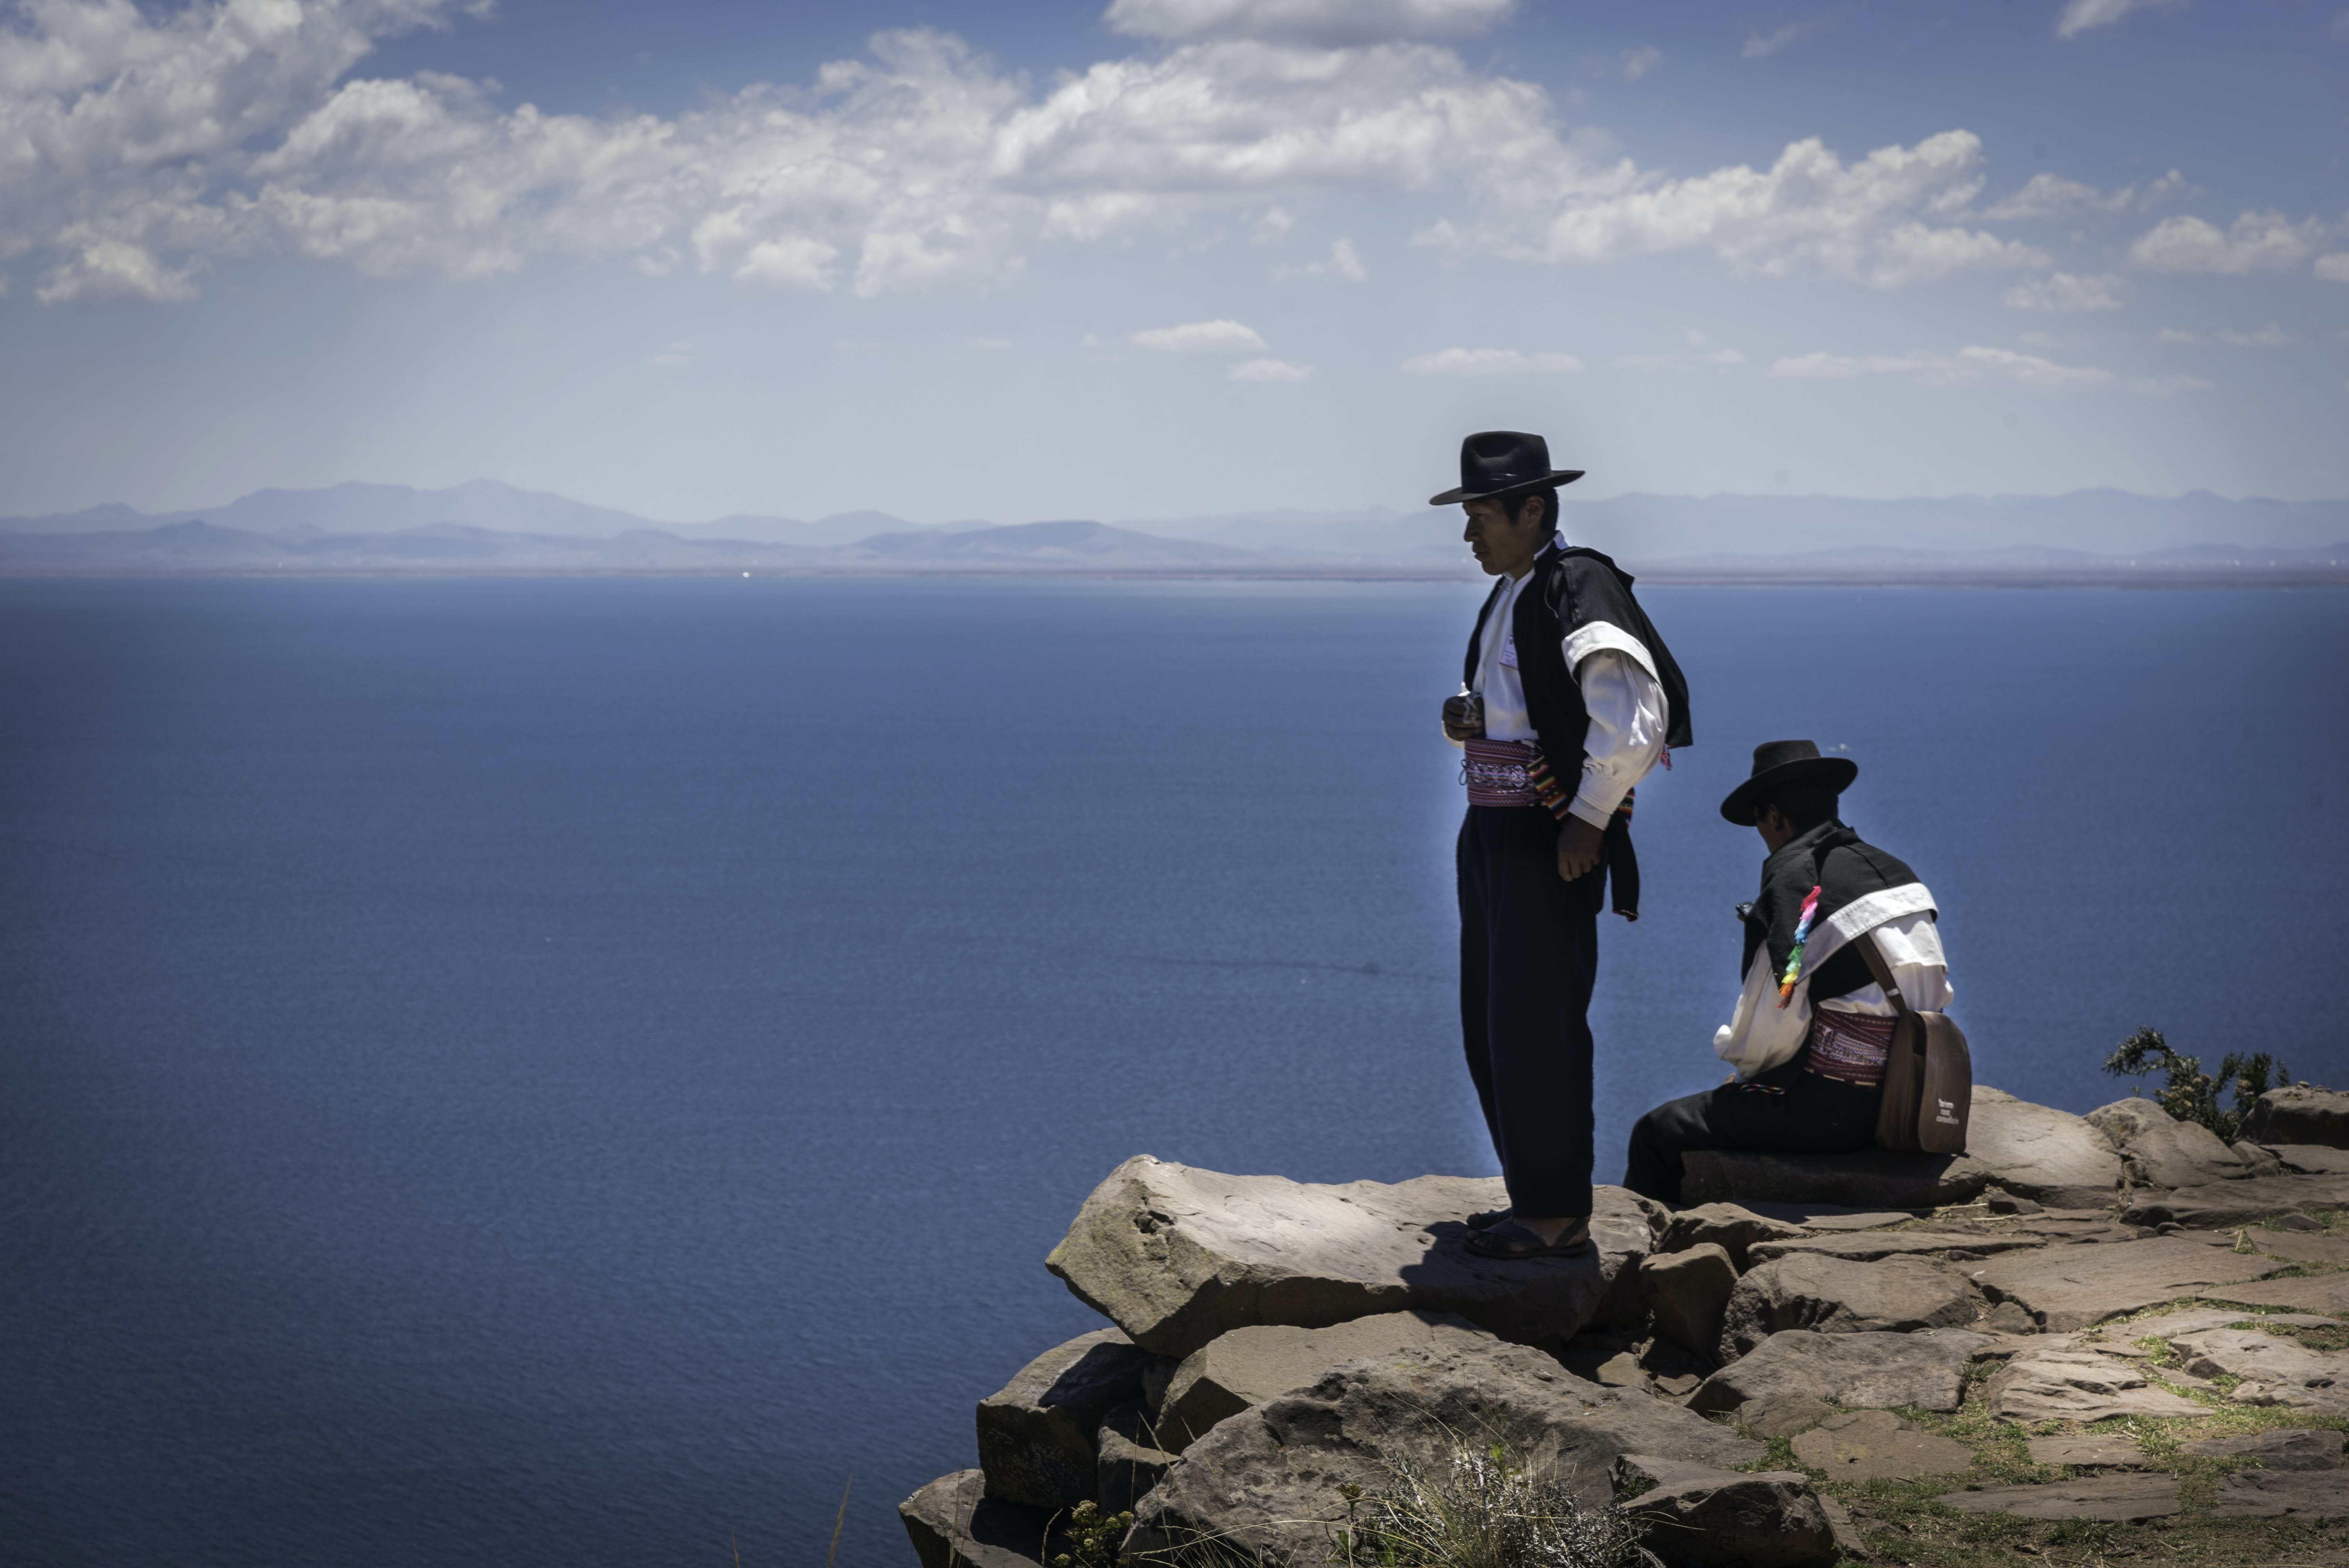 Two Cowboys on Cliff